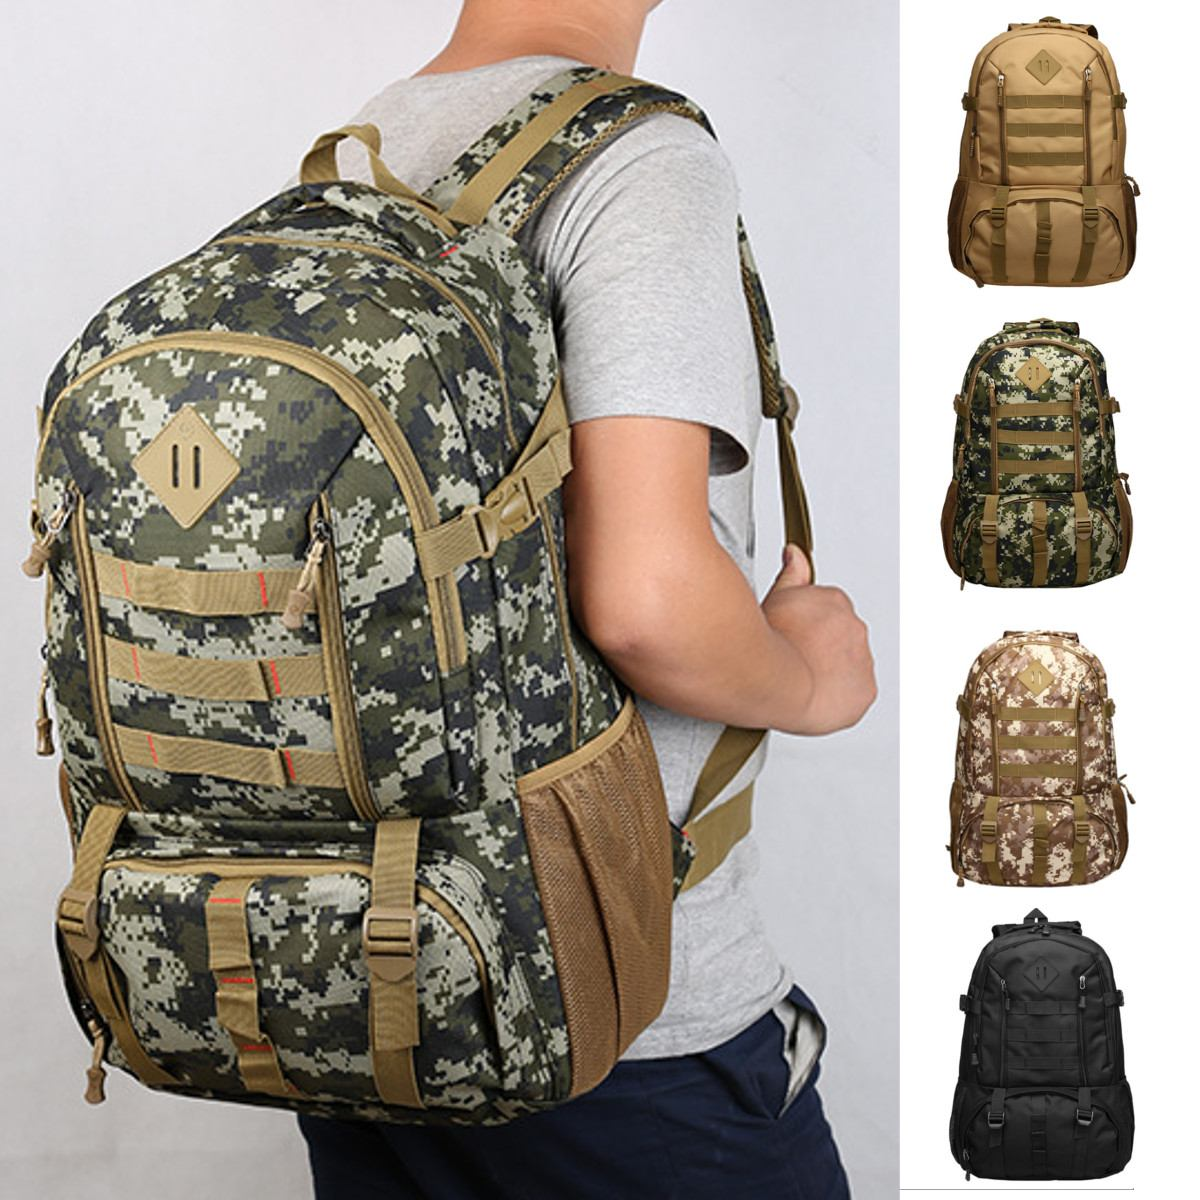 Large 50L Nylon Outdoor Military Climbing Bag Molle Sport Hiking Camping Shoulder Backpack Travel Mountaineering Rucksack